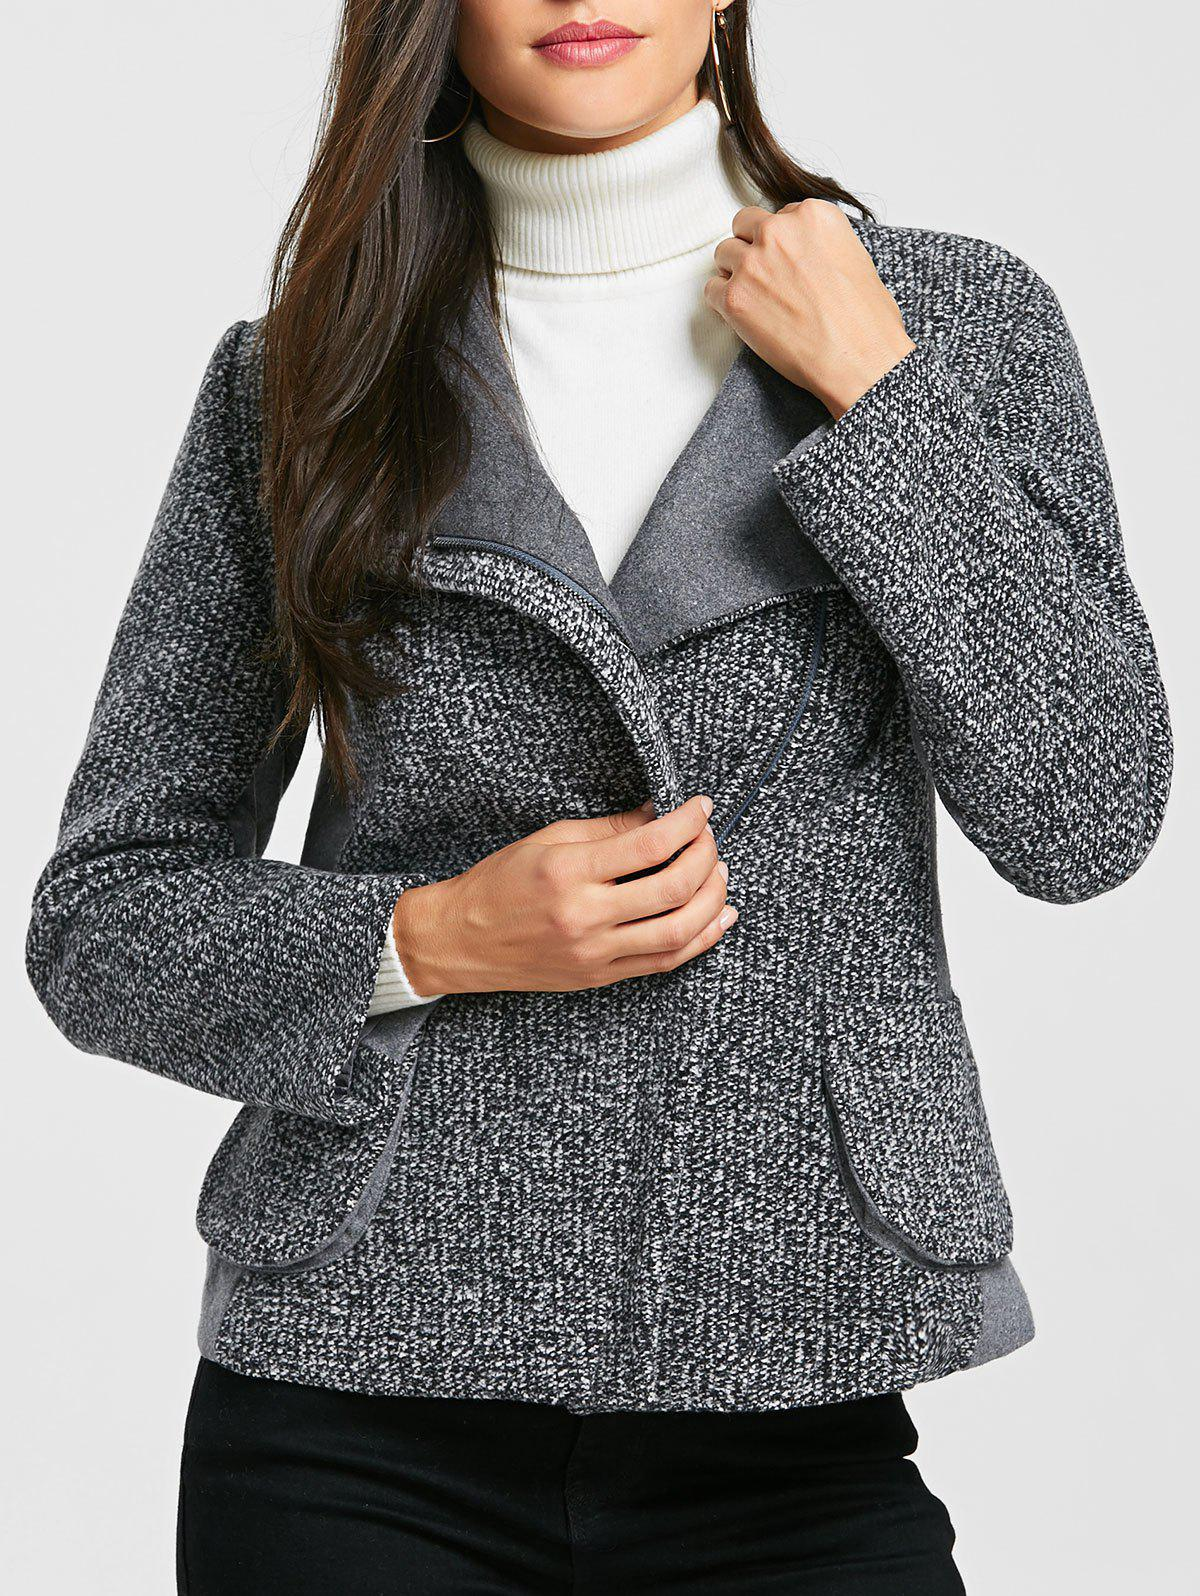 Pockets Oblique Zipper Tweed Wool Jacket - GRAY S